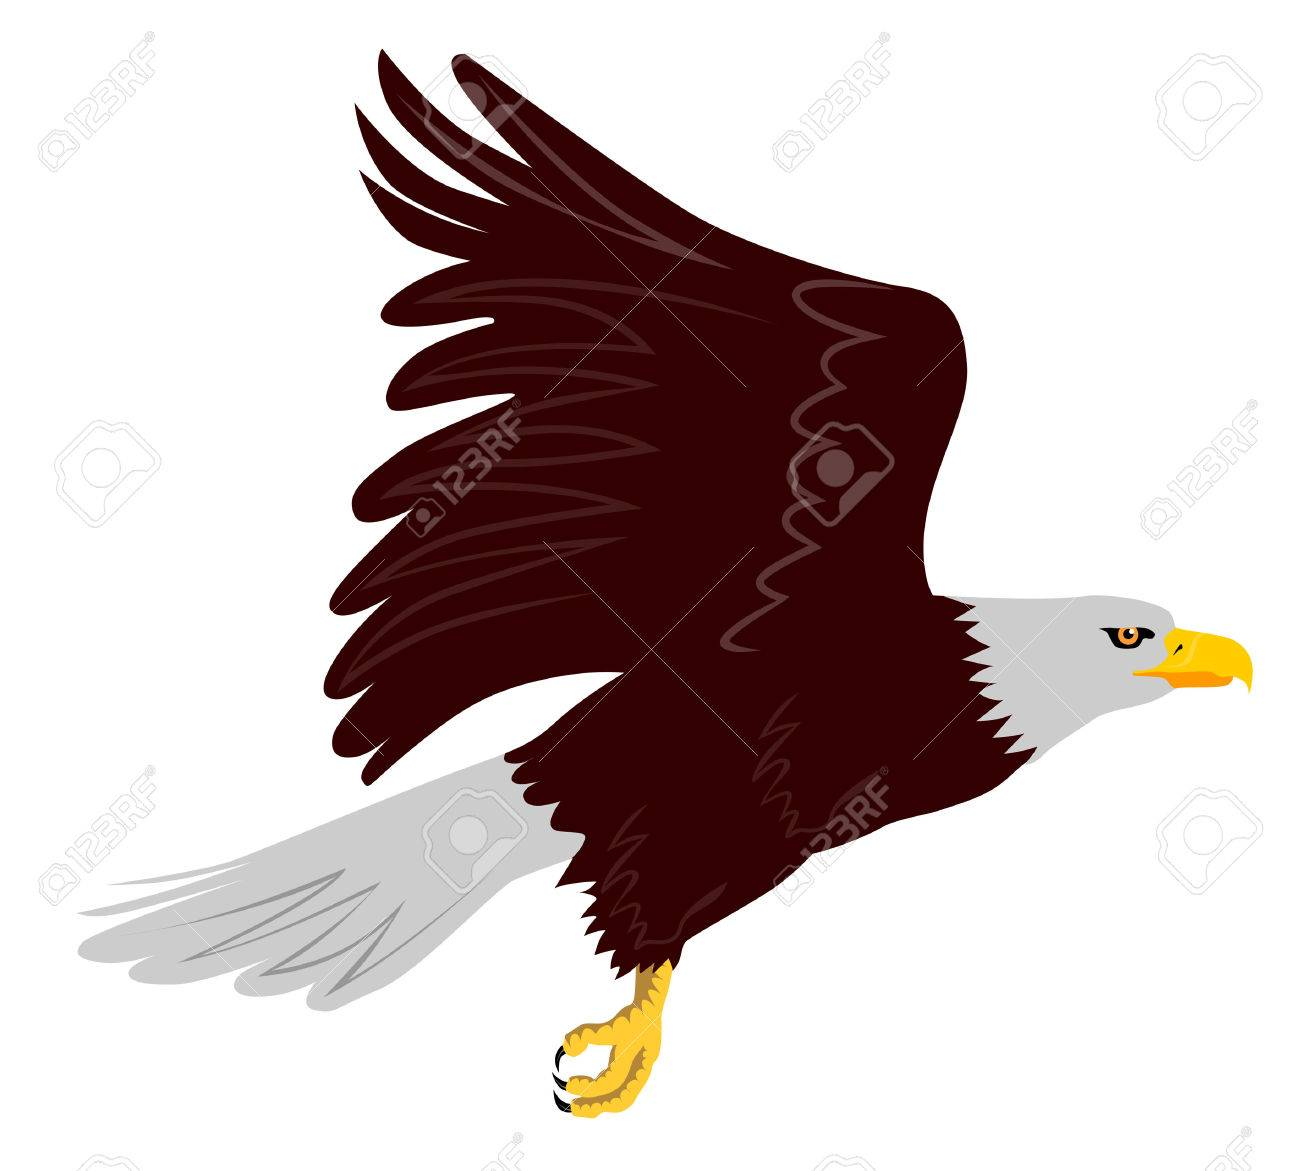 Eagle in flight wings up Stock Vector - 1391098